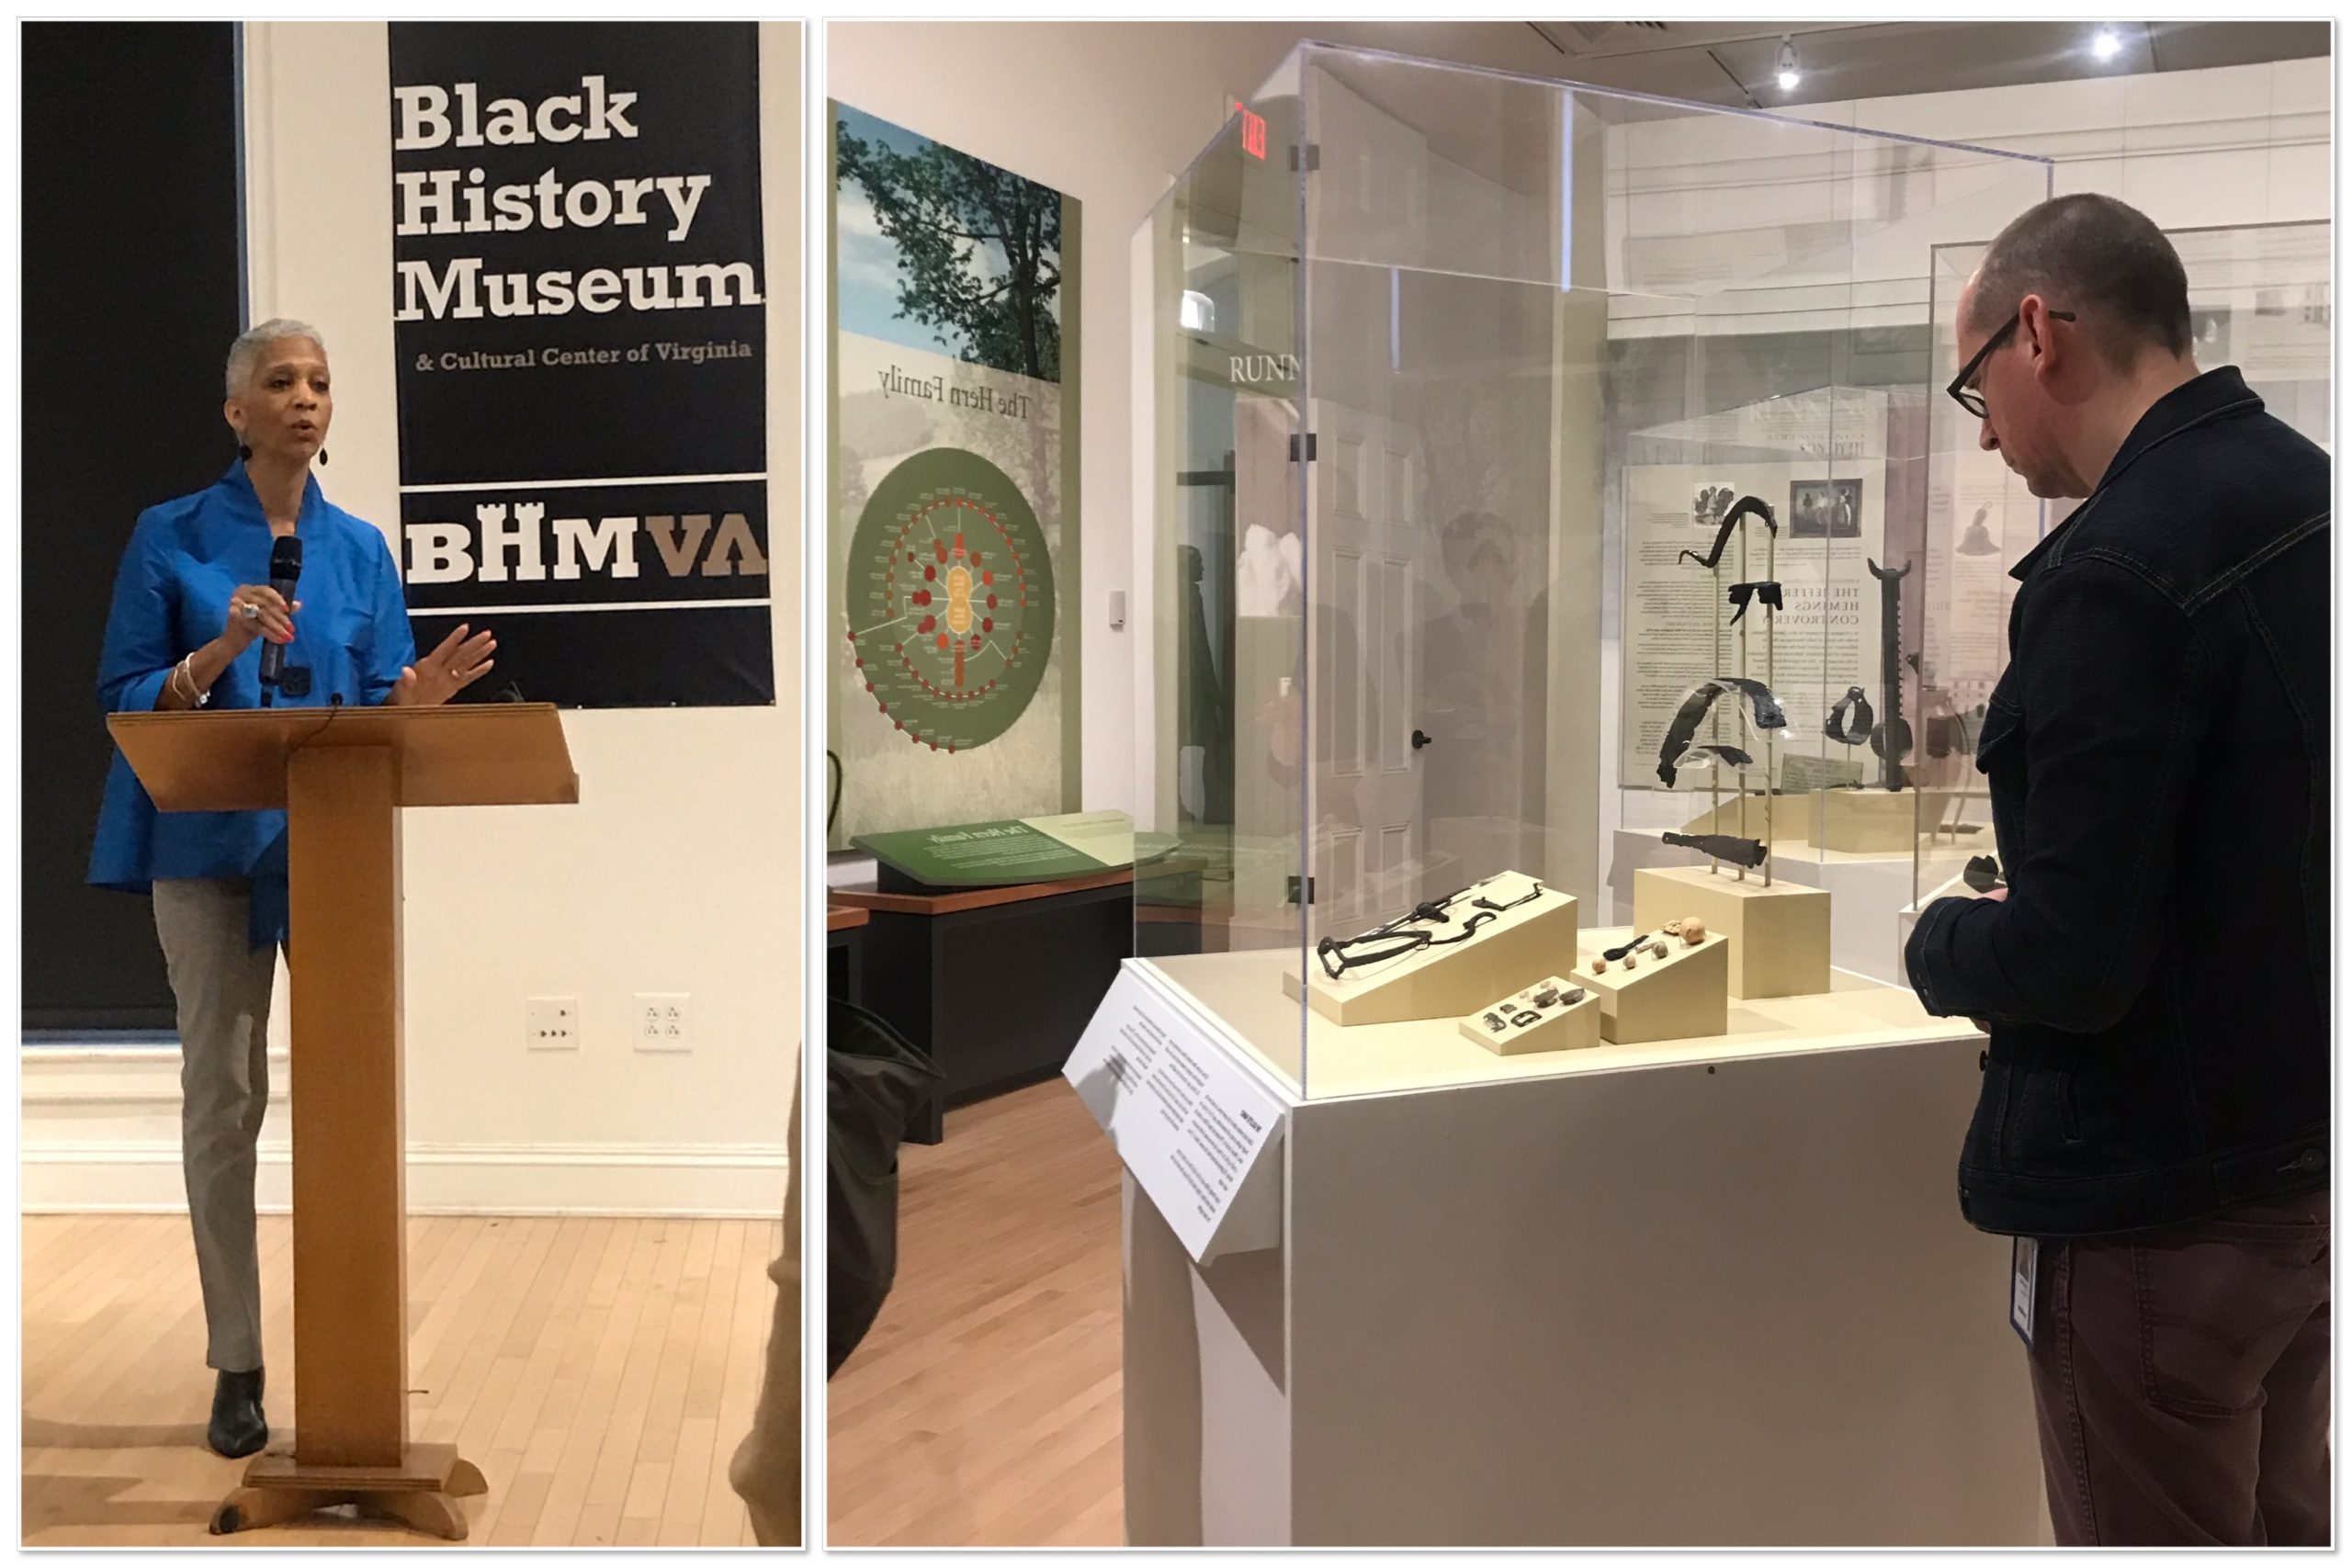 """""""Paradox"""" Exhibit Explores Life At Monticello From The Viewpoint Of The Enslaved Community"""